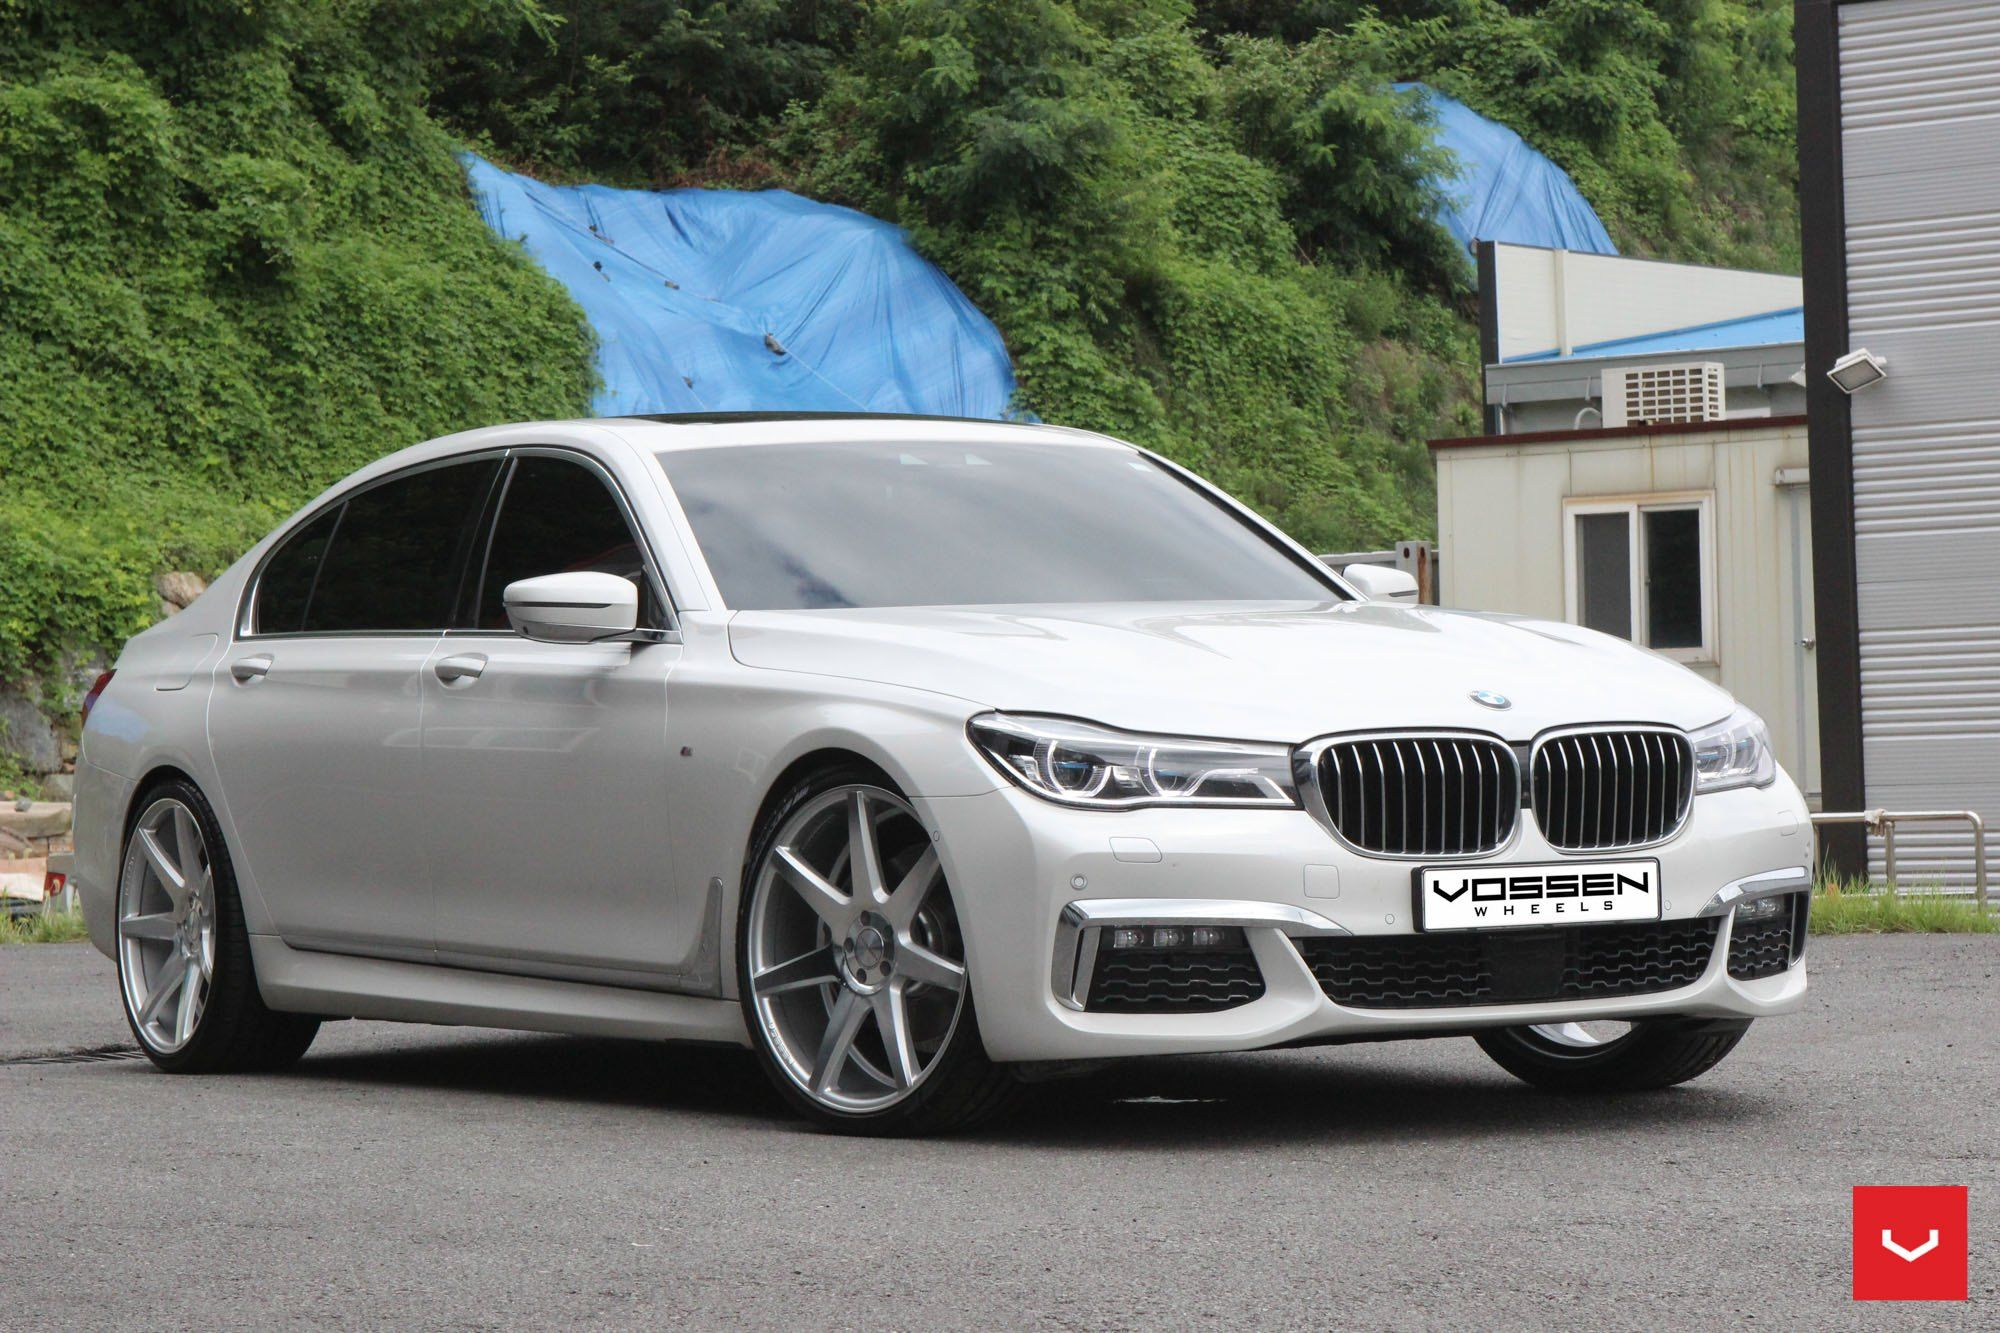 White Bmw 7 Series Enhanced By Chrome Details With Images Bmw